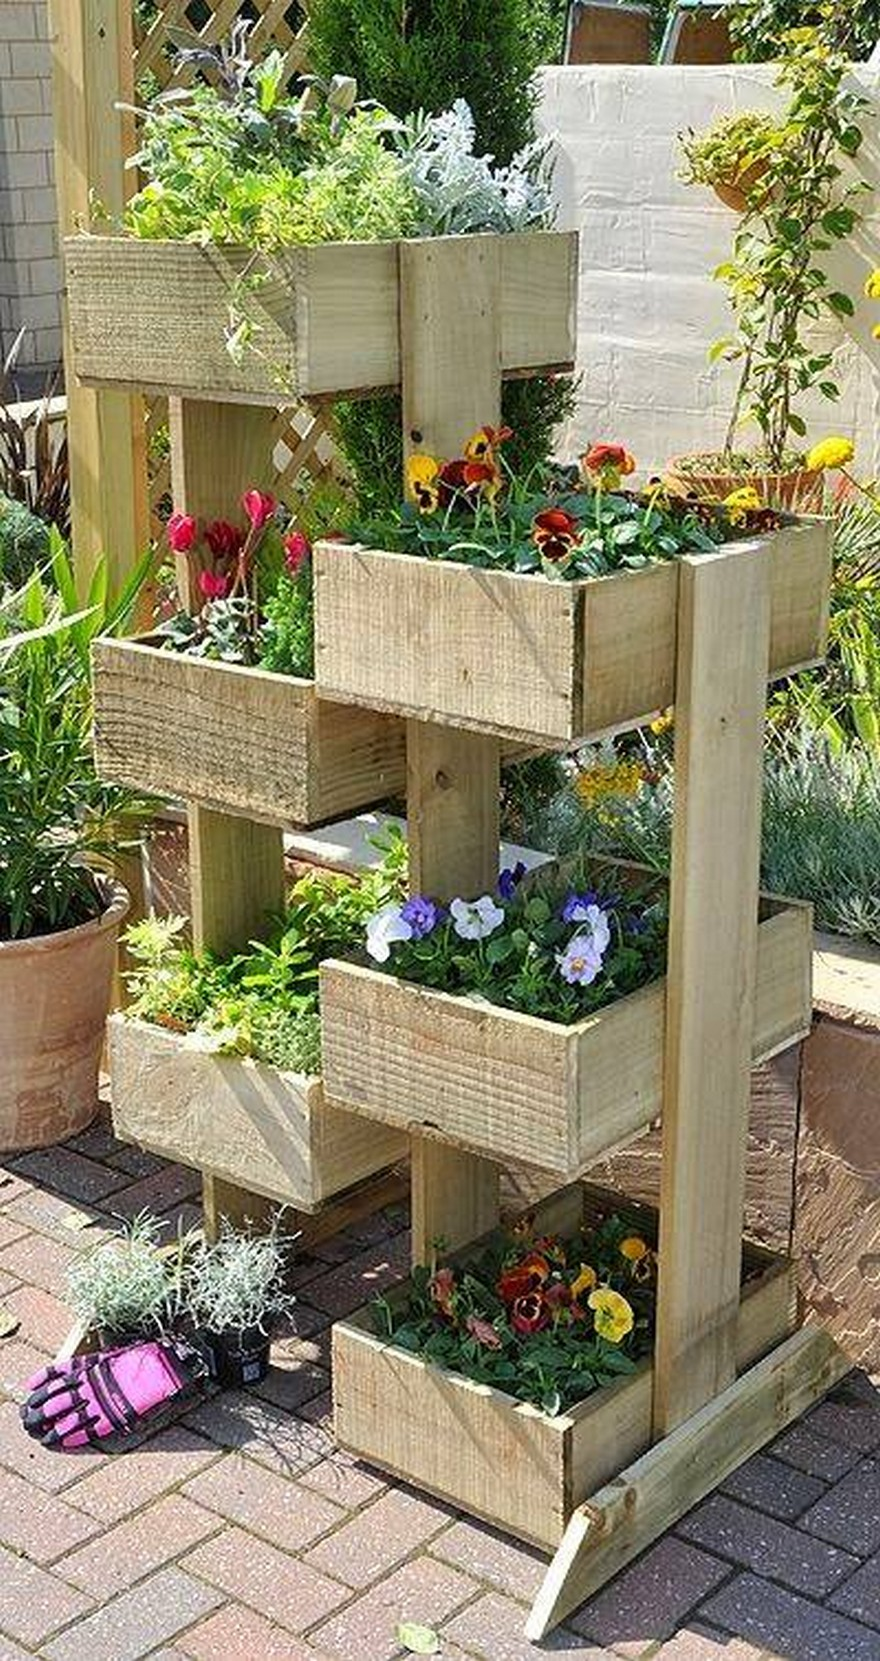 Wonderful pallet wood ideas pallet ideas recycled upcycled pallets furniture projects - Jardin vertical pallet ...